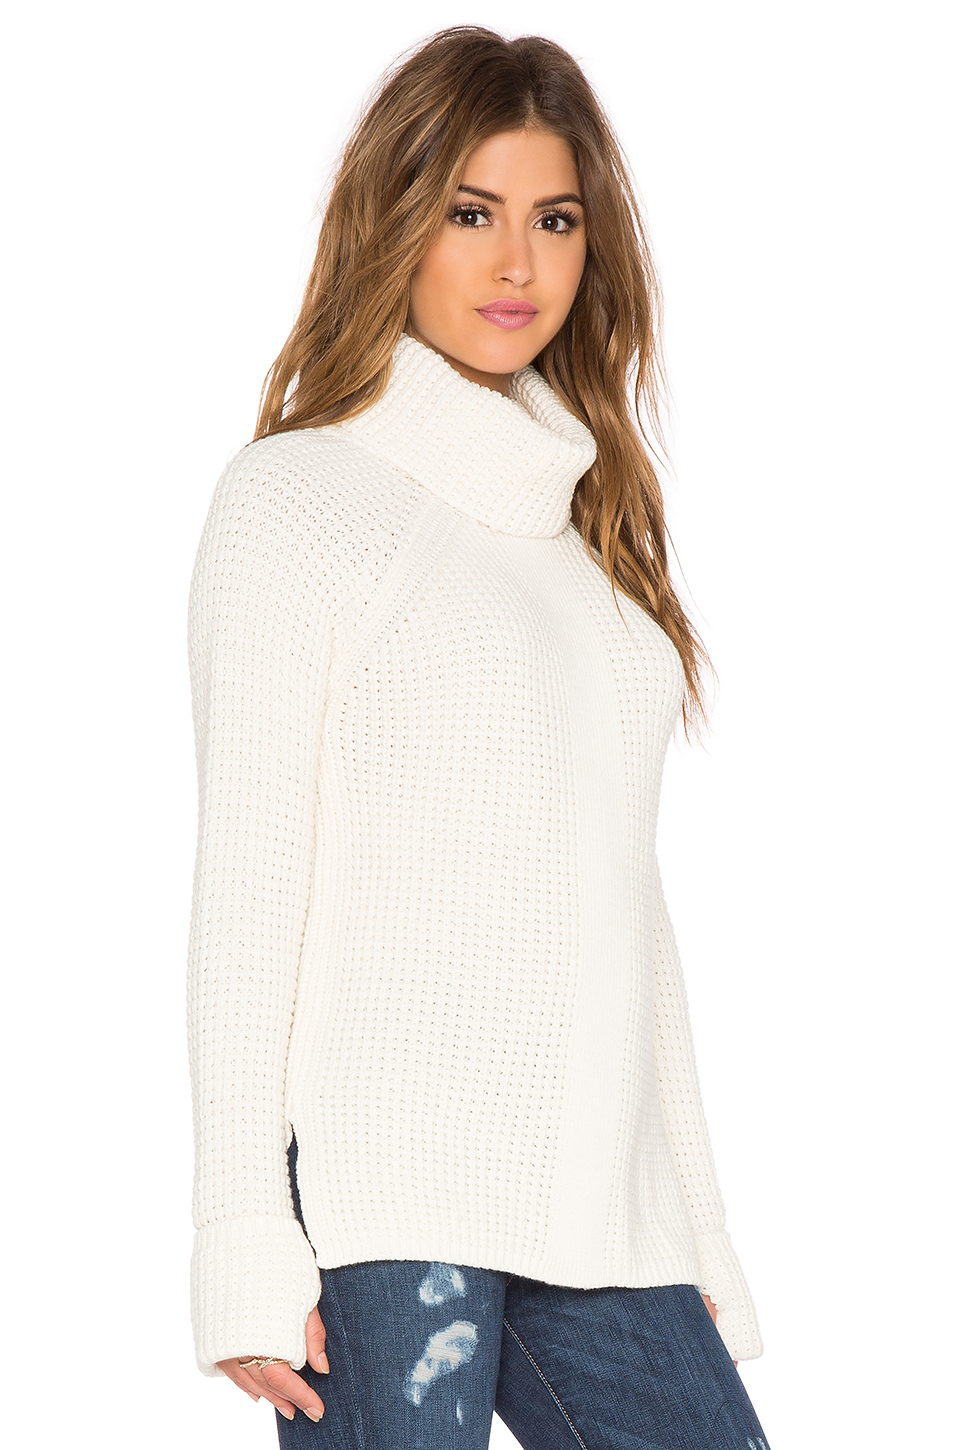 Thumbhole Sweater